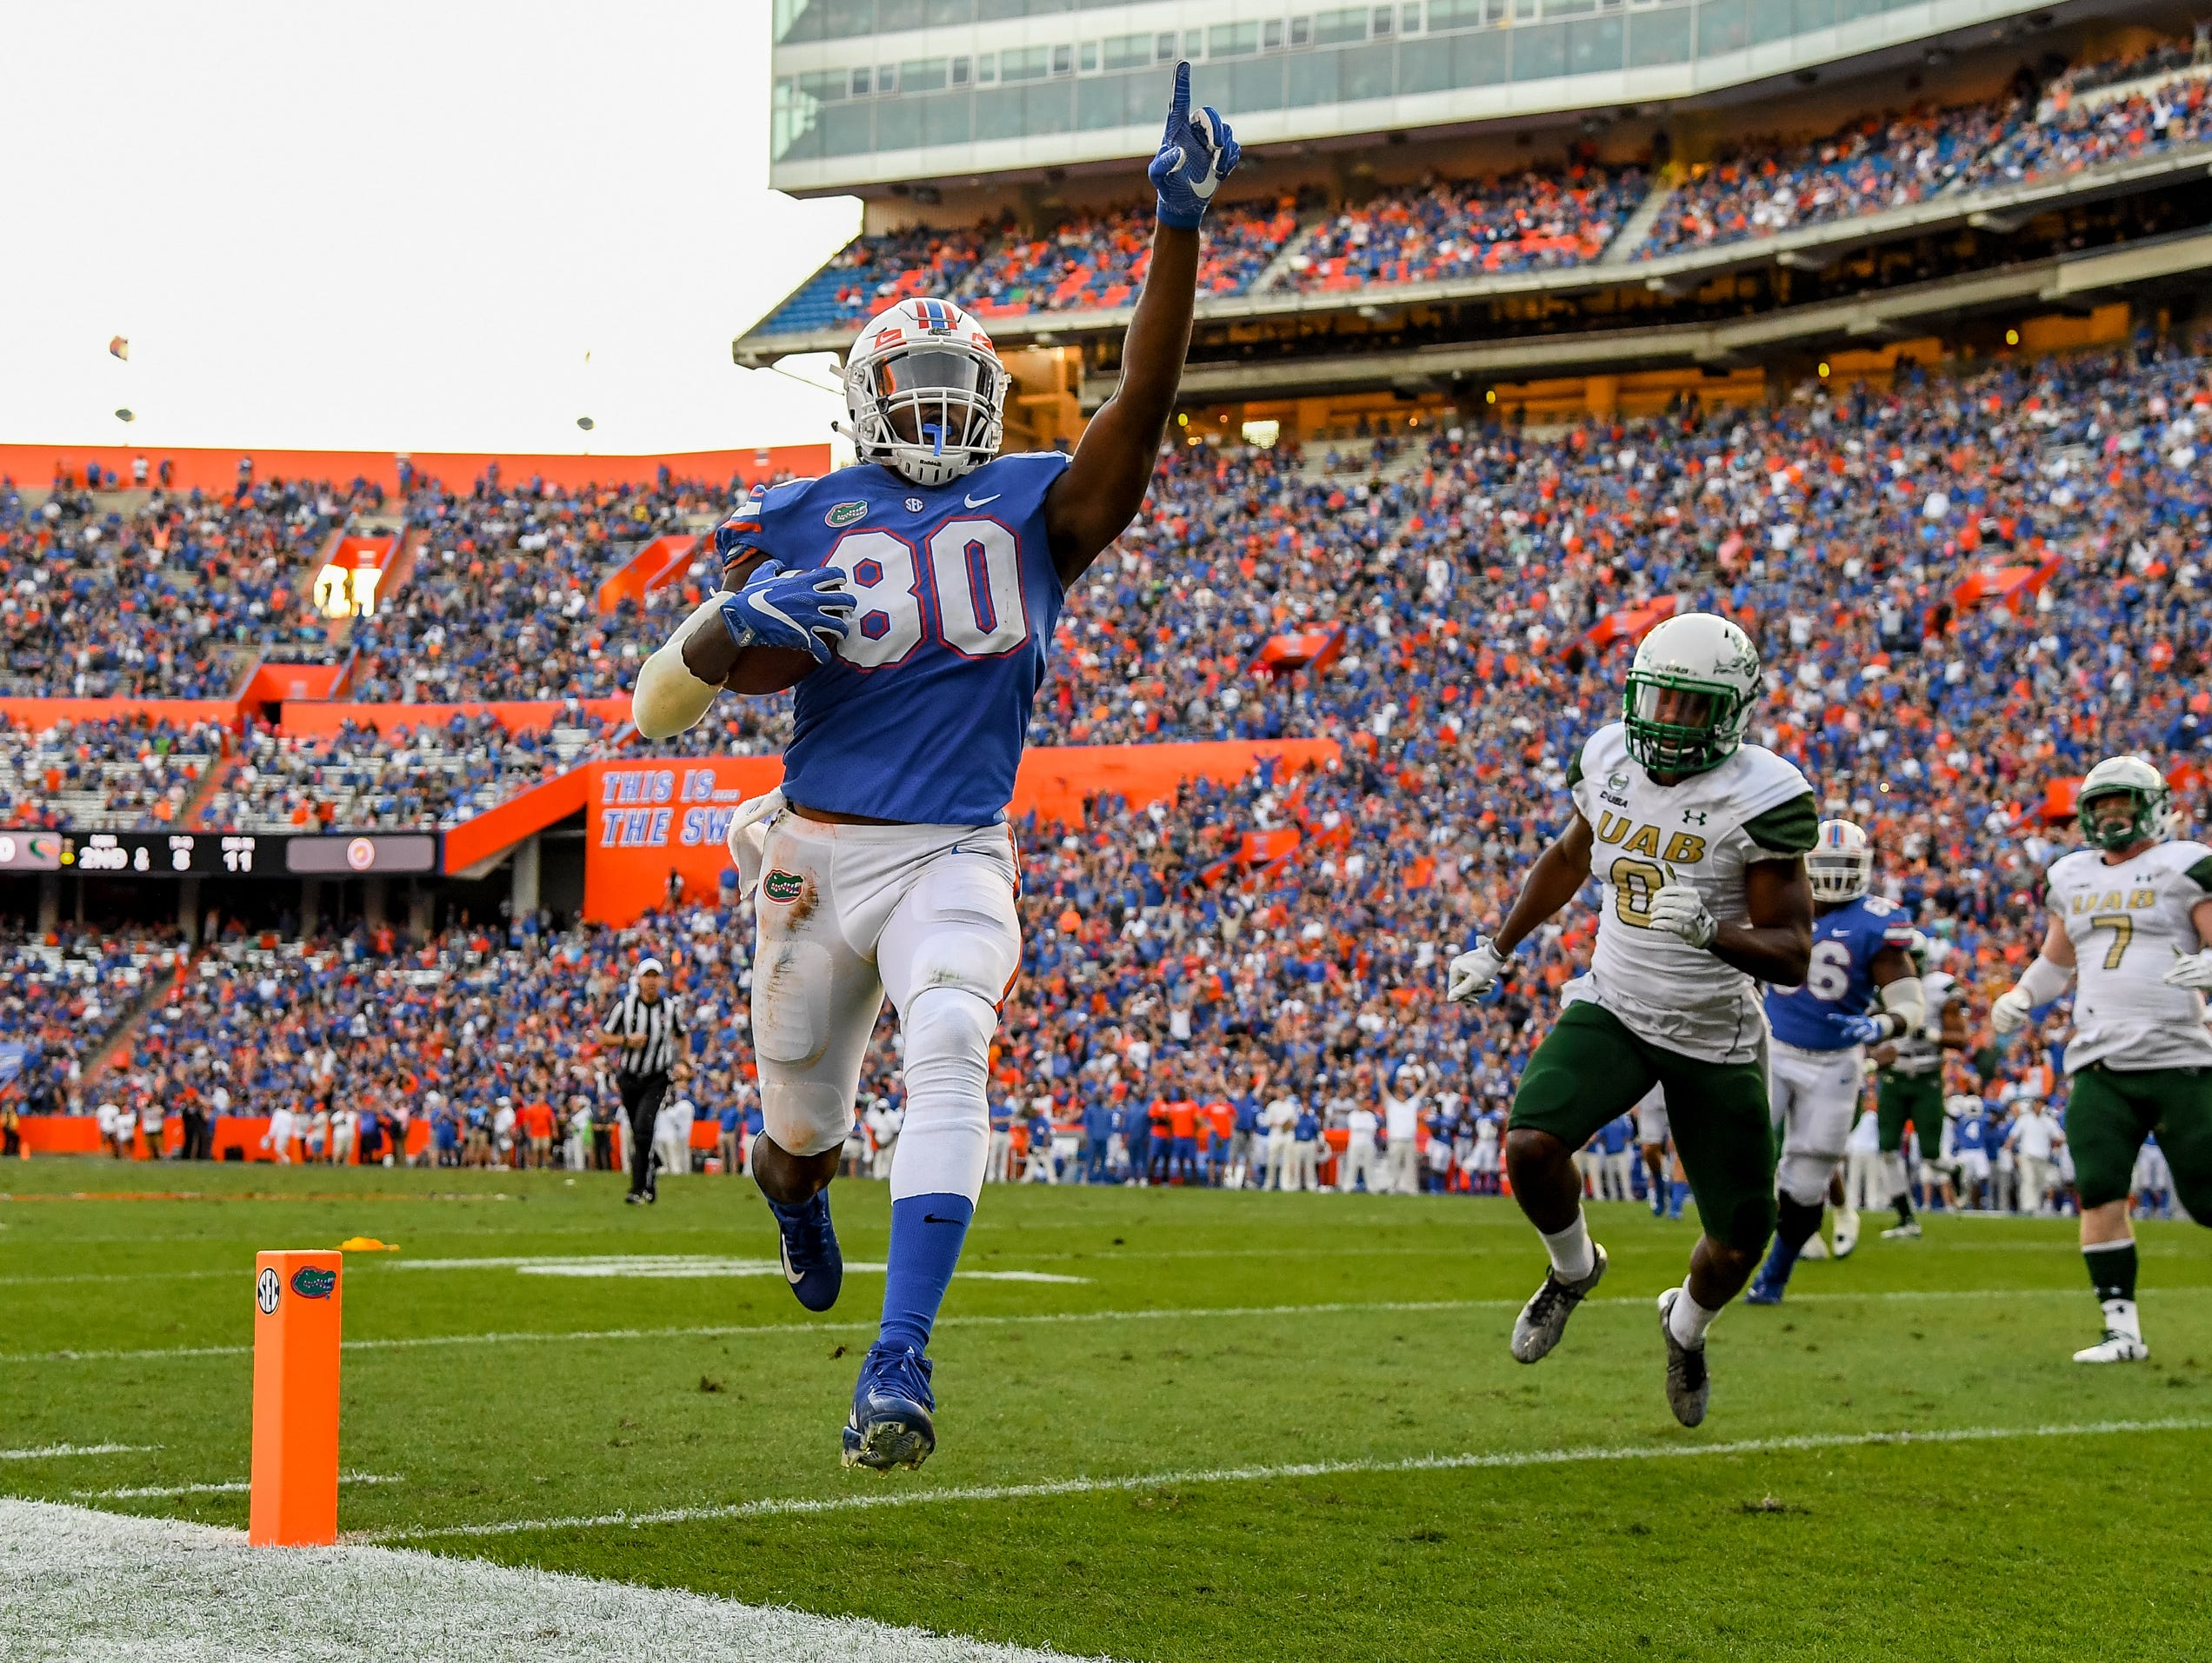 Florida can stop Florida State from making a bowl game by defeating the Seminoles on Saturday.